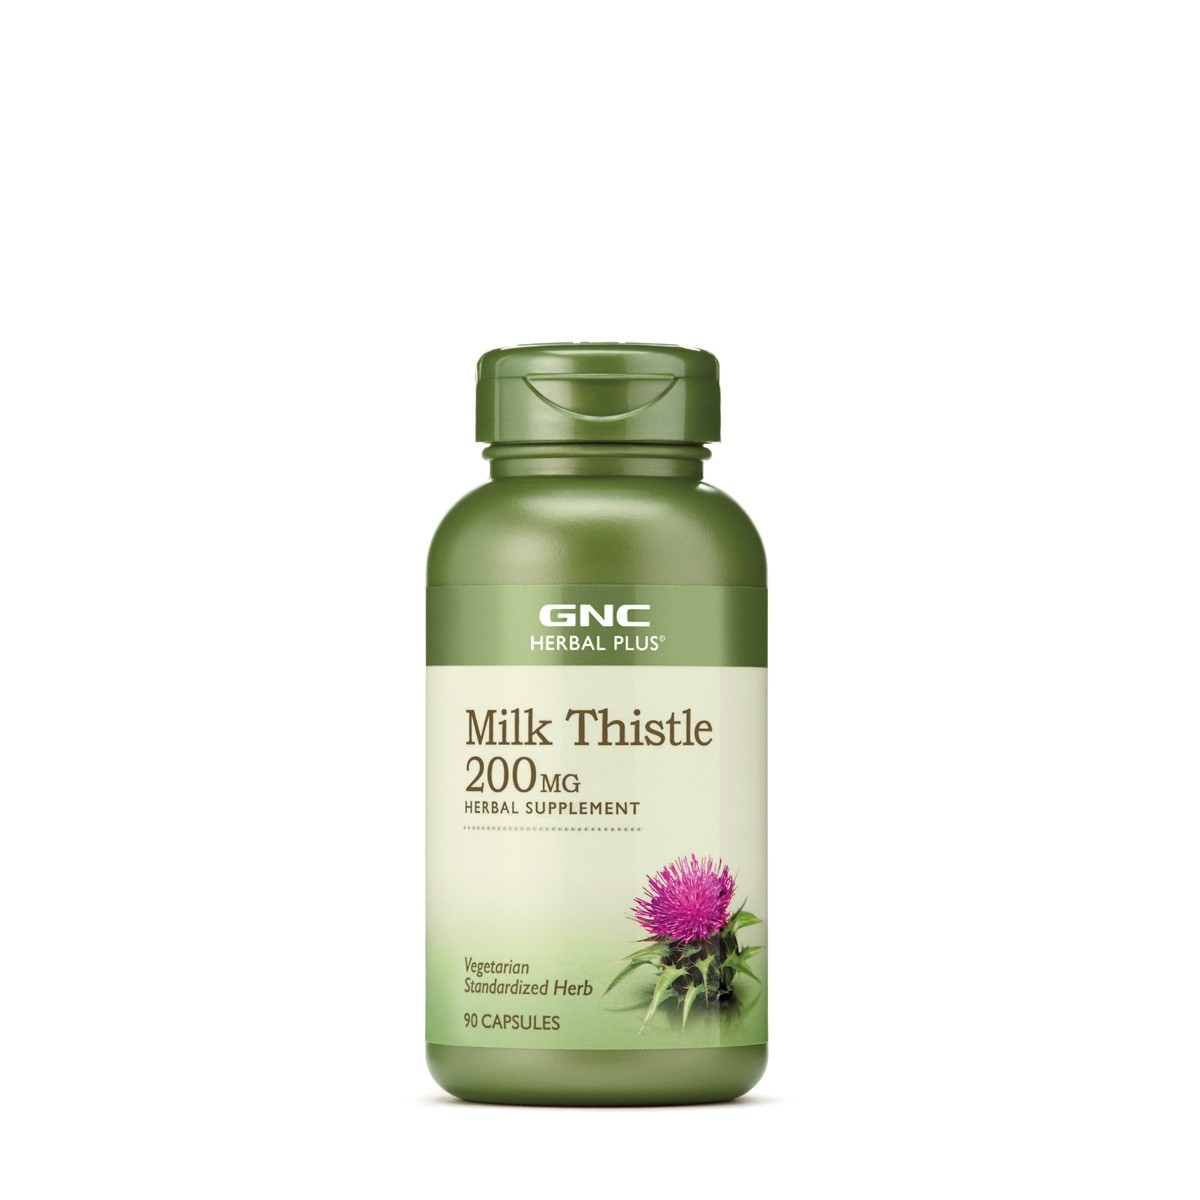 GNC Herbal Plus® Milk Thistle 200 mg, Silimarina, 90 cps